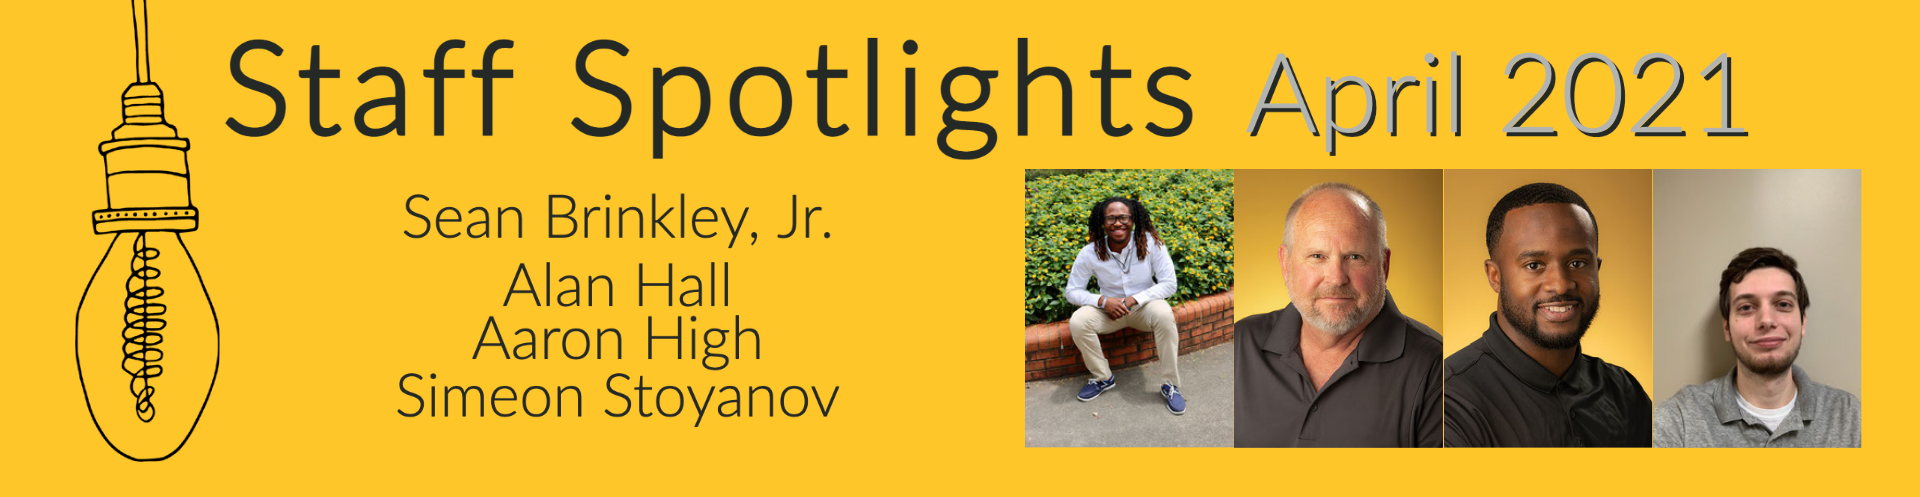 Celebrating our April Staff Spotlights